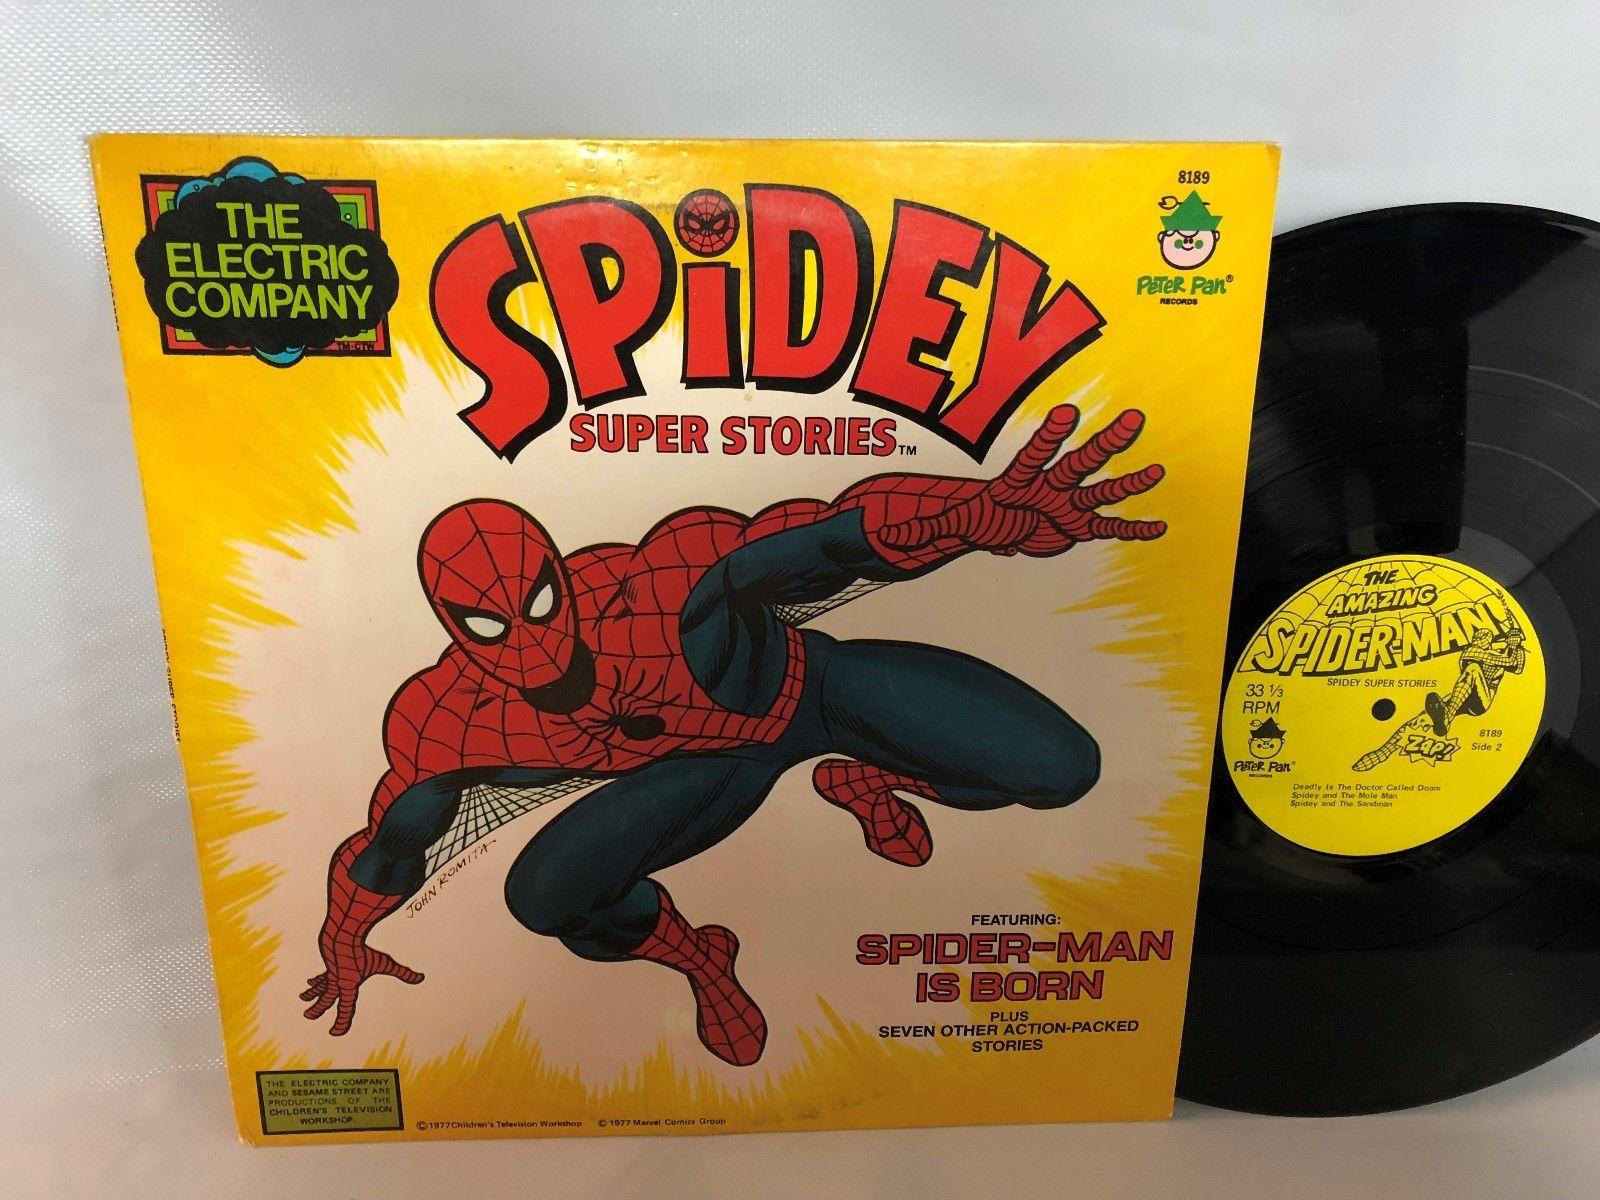 Vintage 1977 The Amazing SpiderMan Record LP Super Stories VG+ Condition Rare